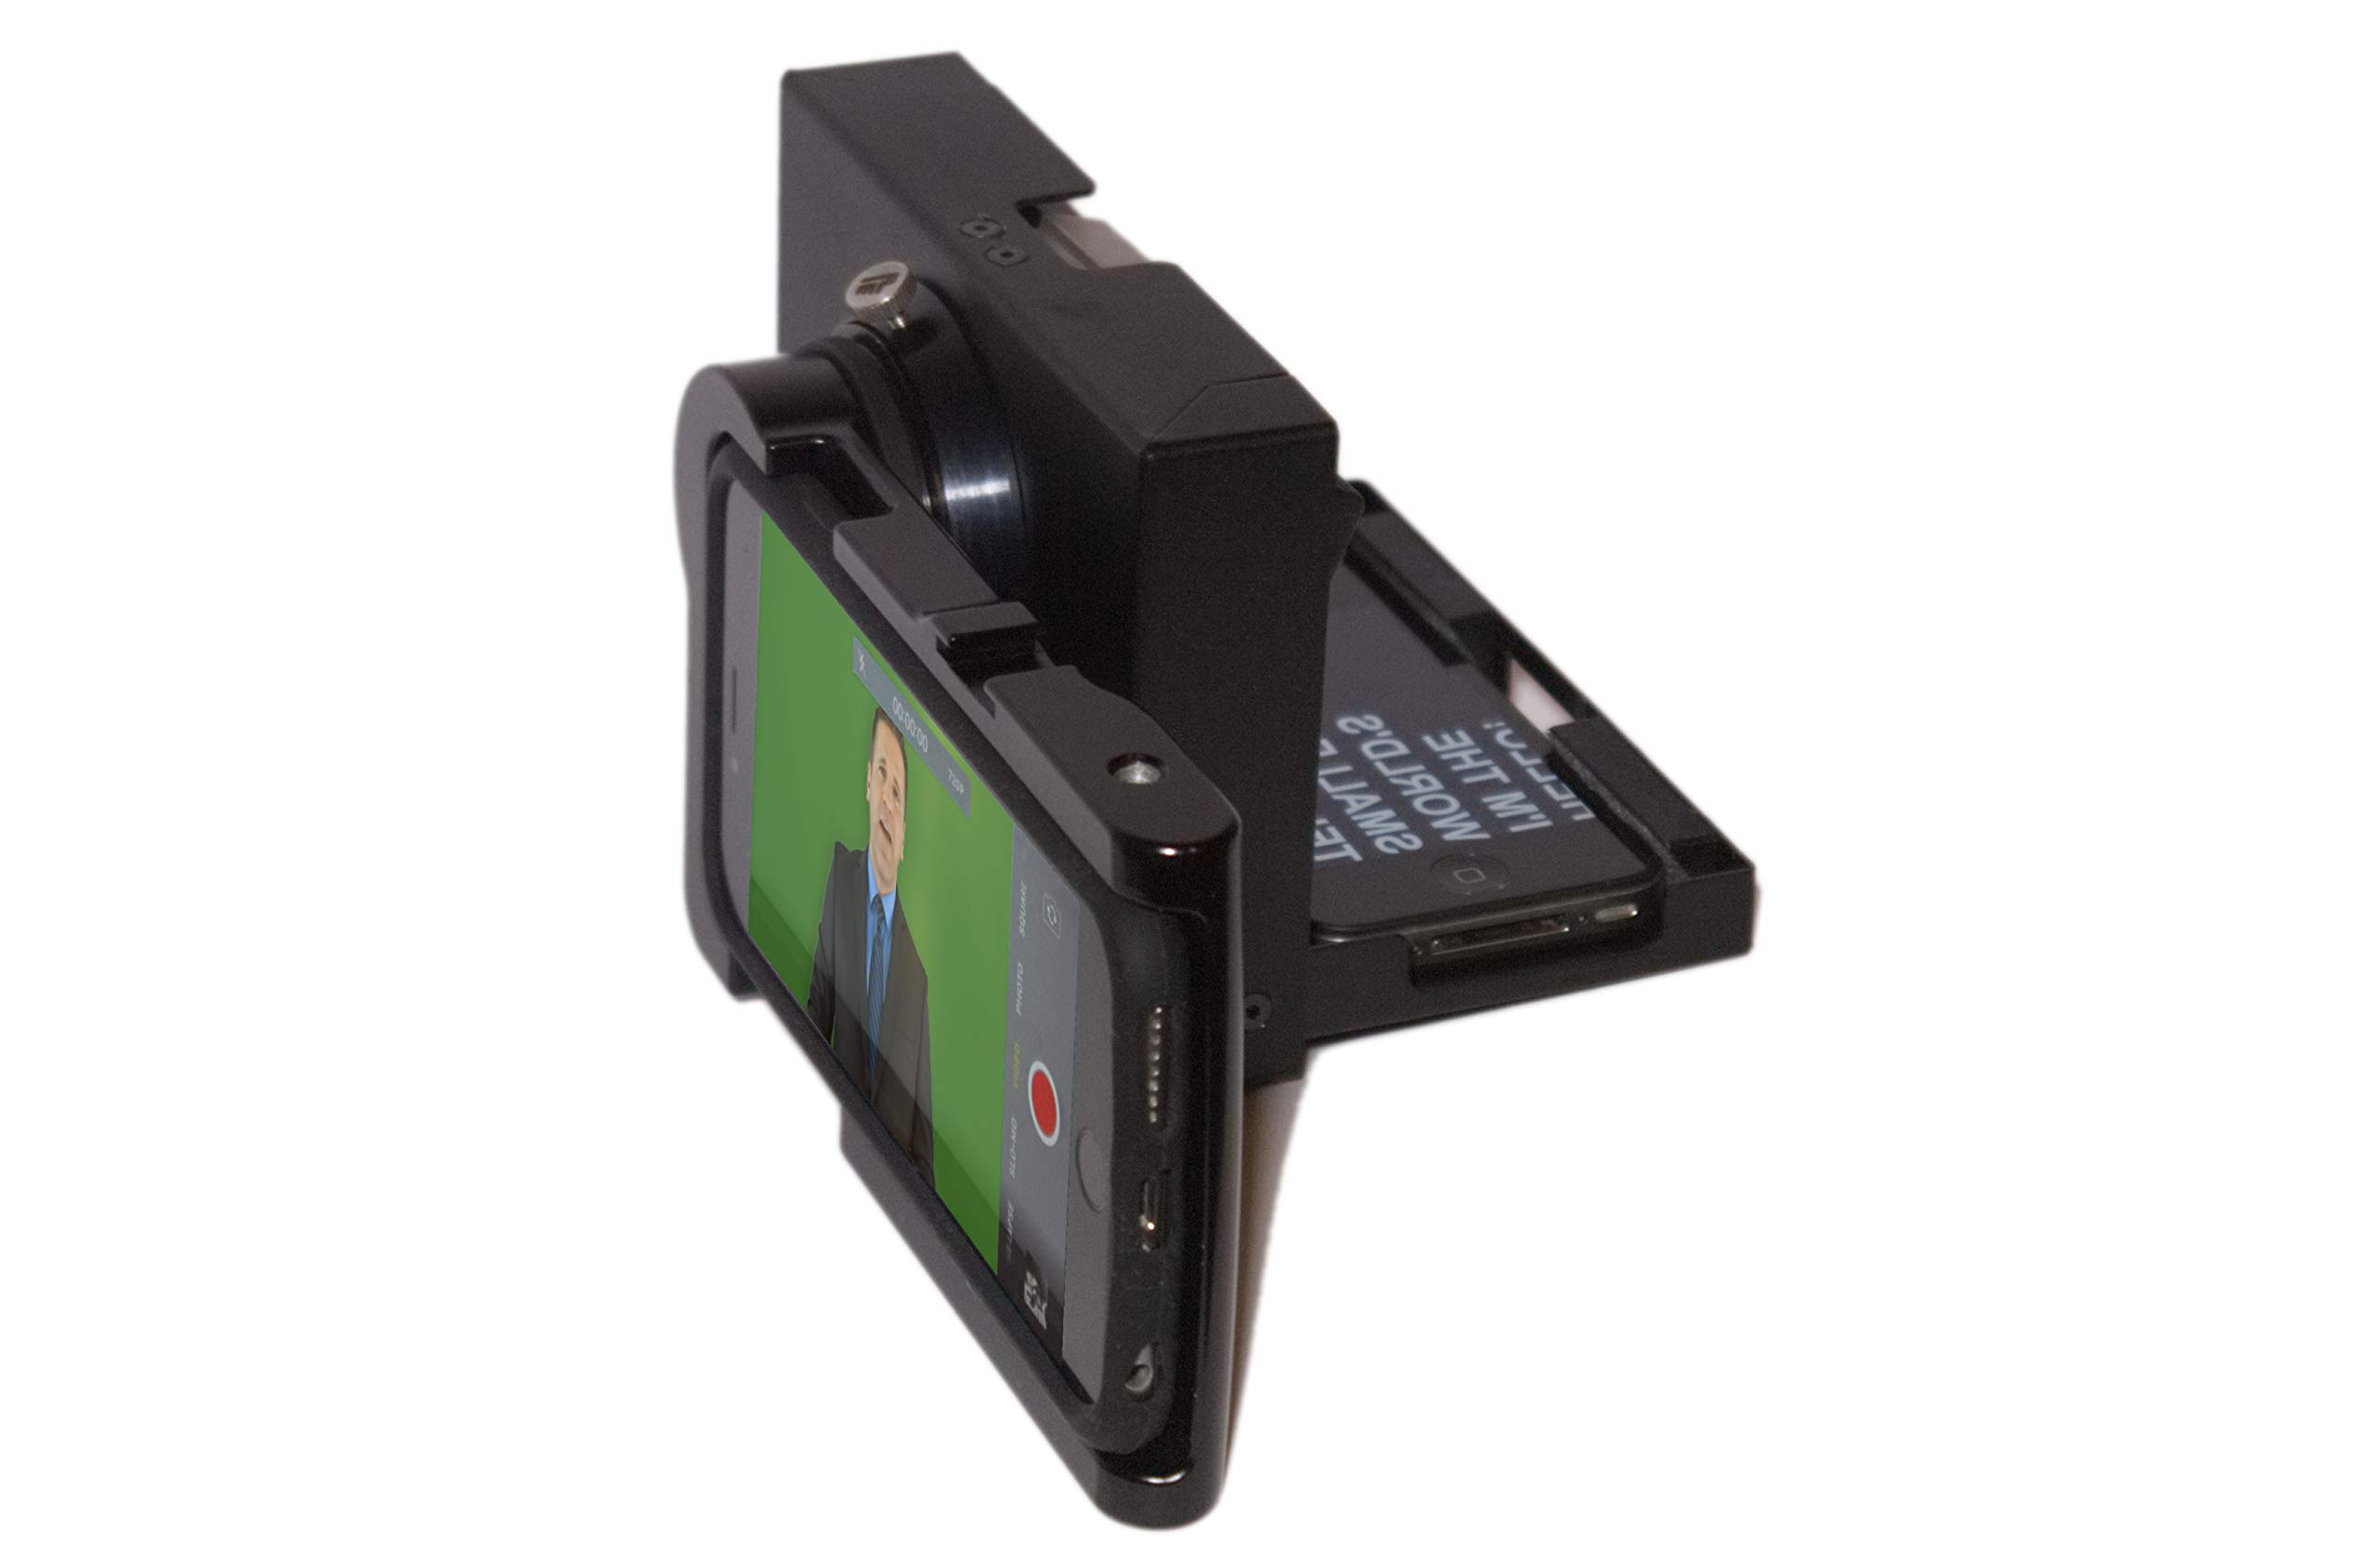 MicroPrompter - World's Smallest Professional Portable Teleprompter for Recording Videos on Your Smartphone, Camcorder or Small DSLR by MicroPrompter (Image #3)